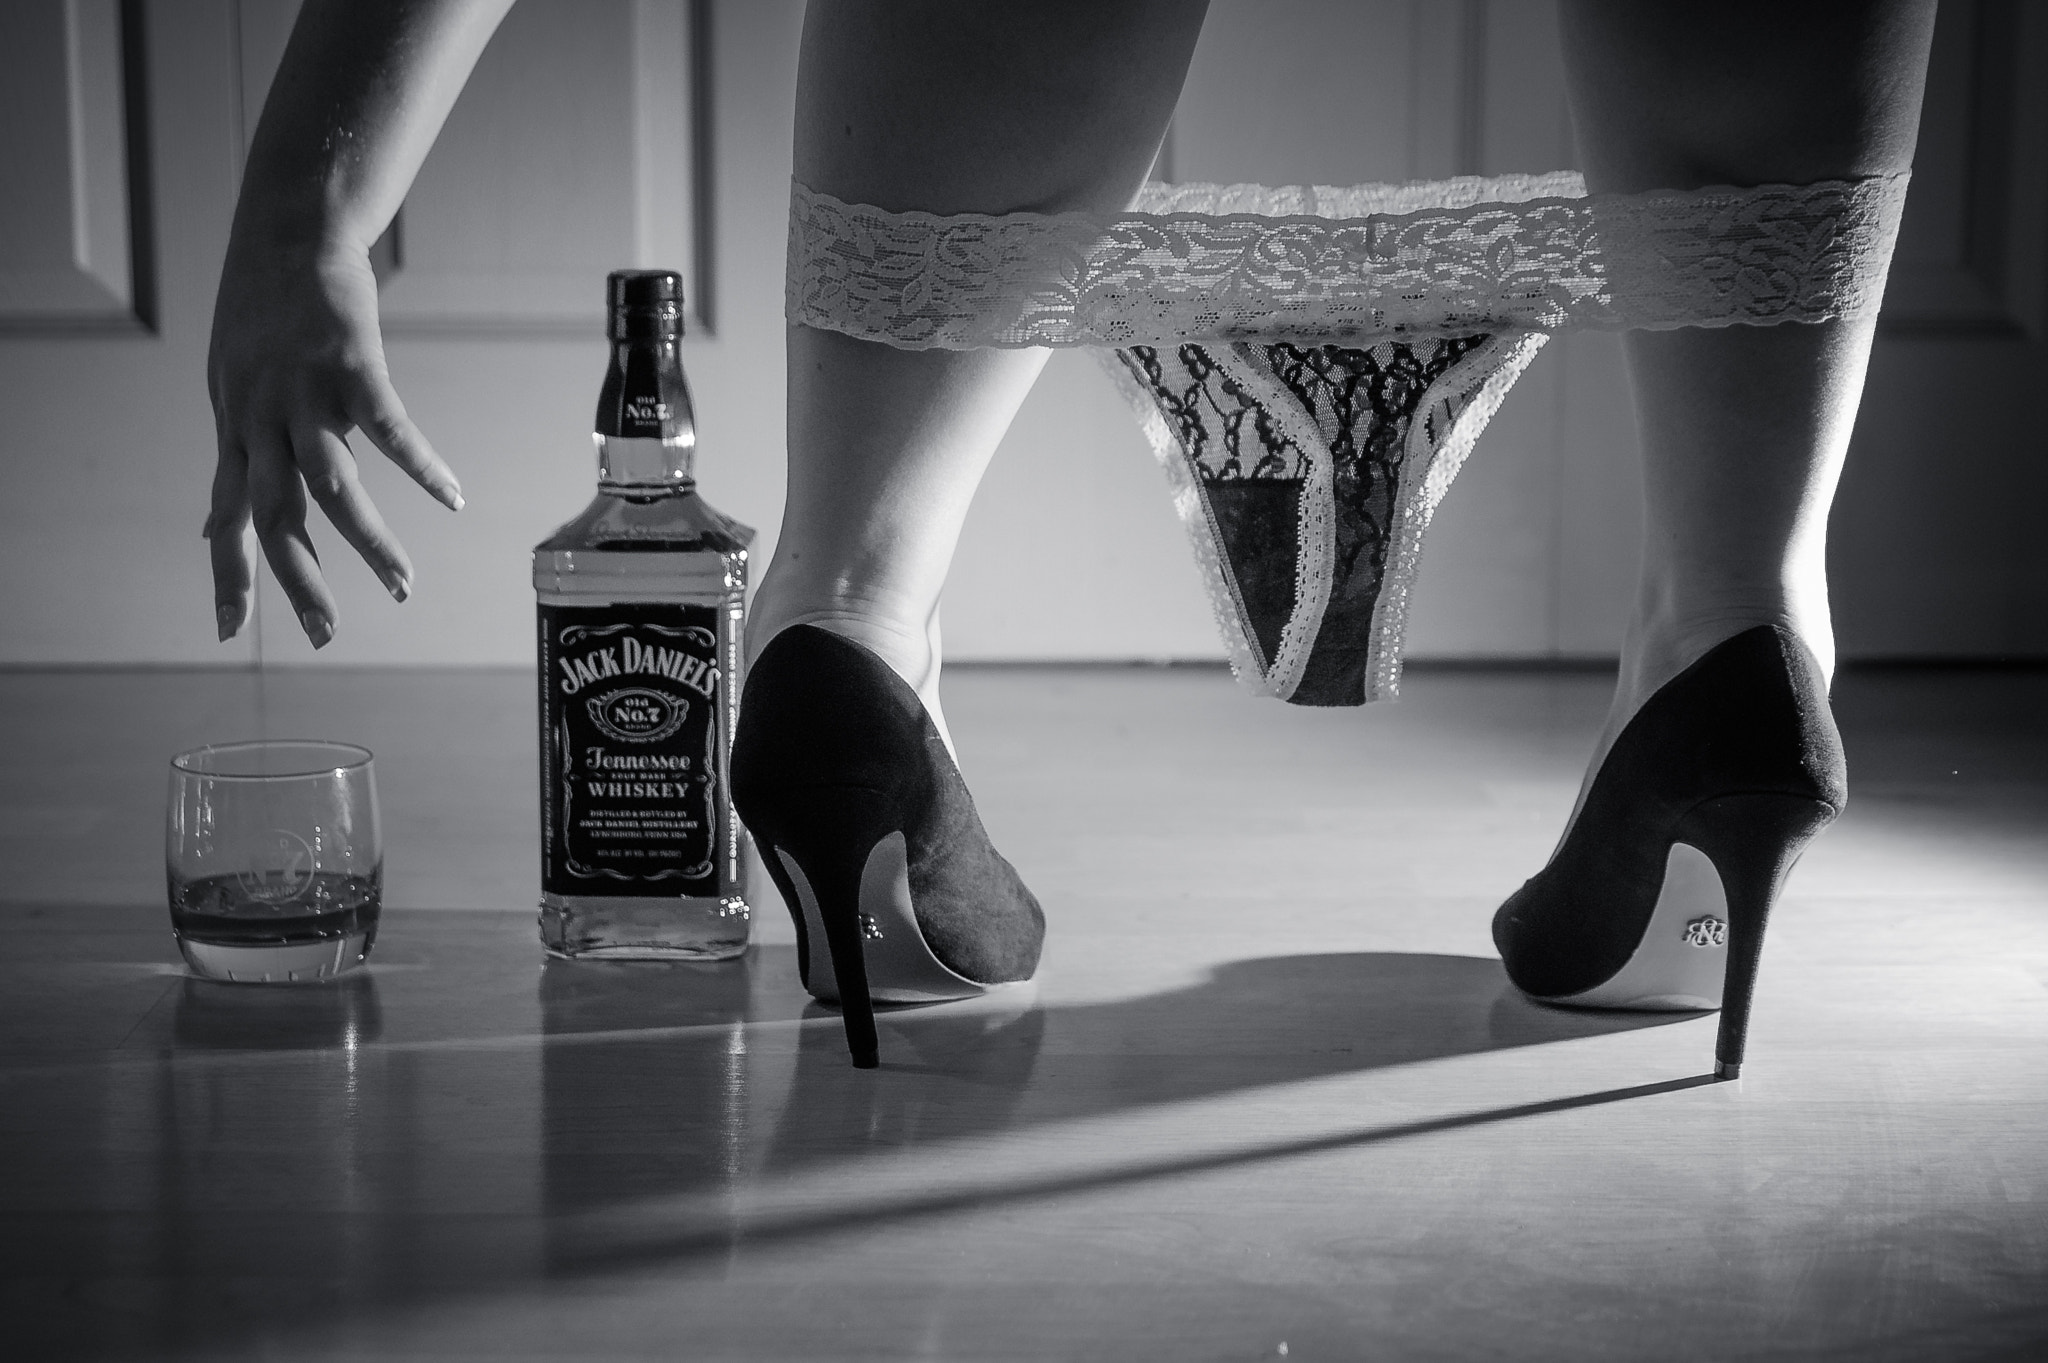 Photograph Jack Daniels if you Please by James Ruiz on 500px